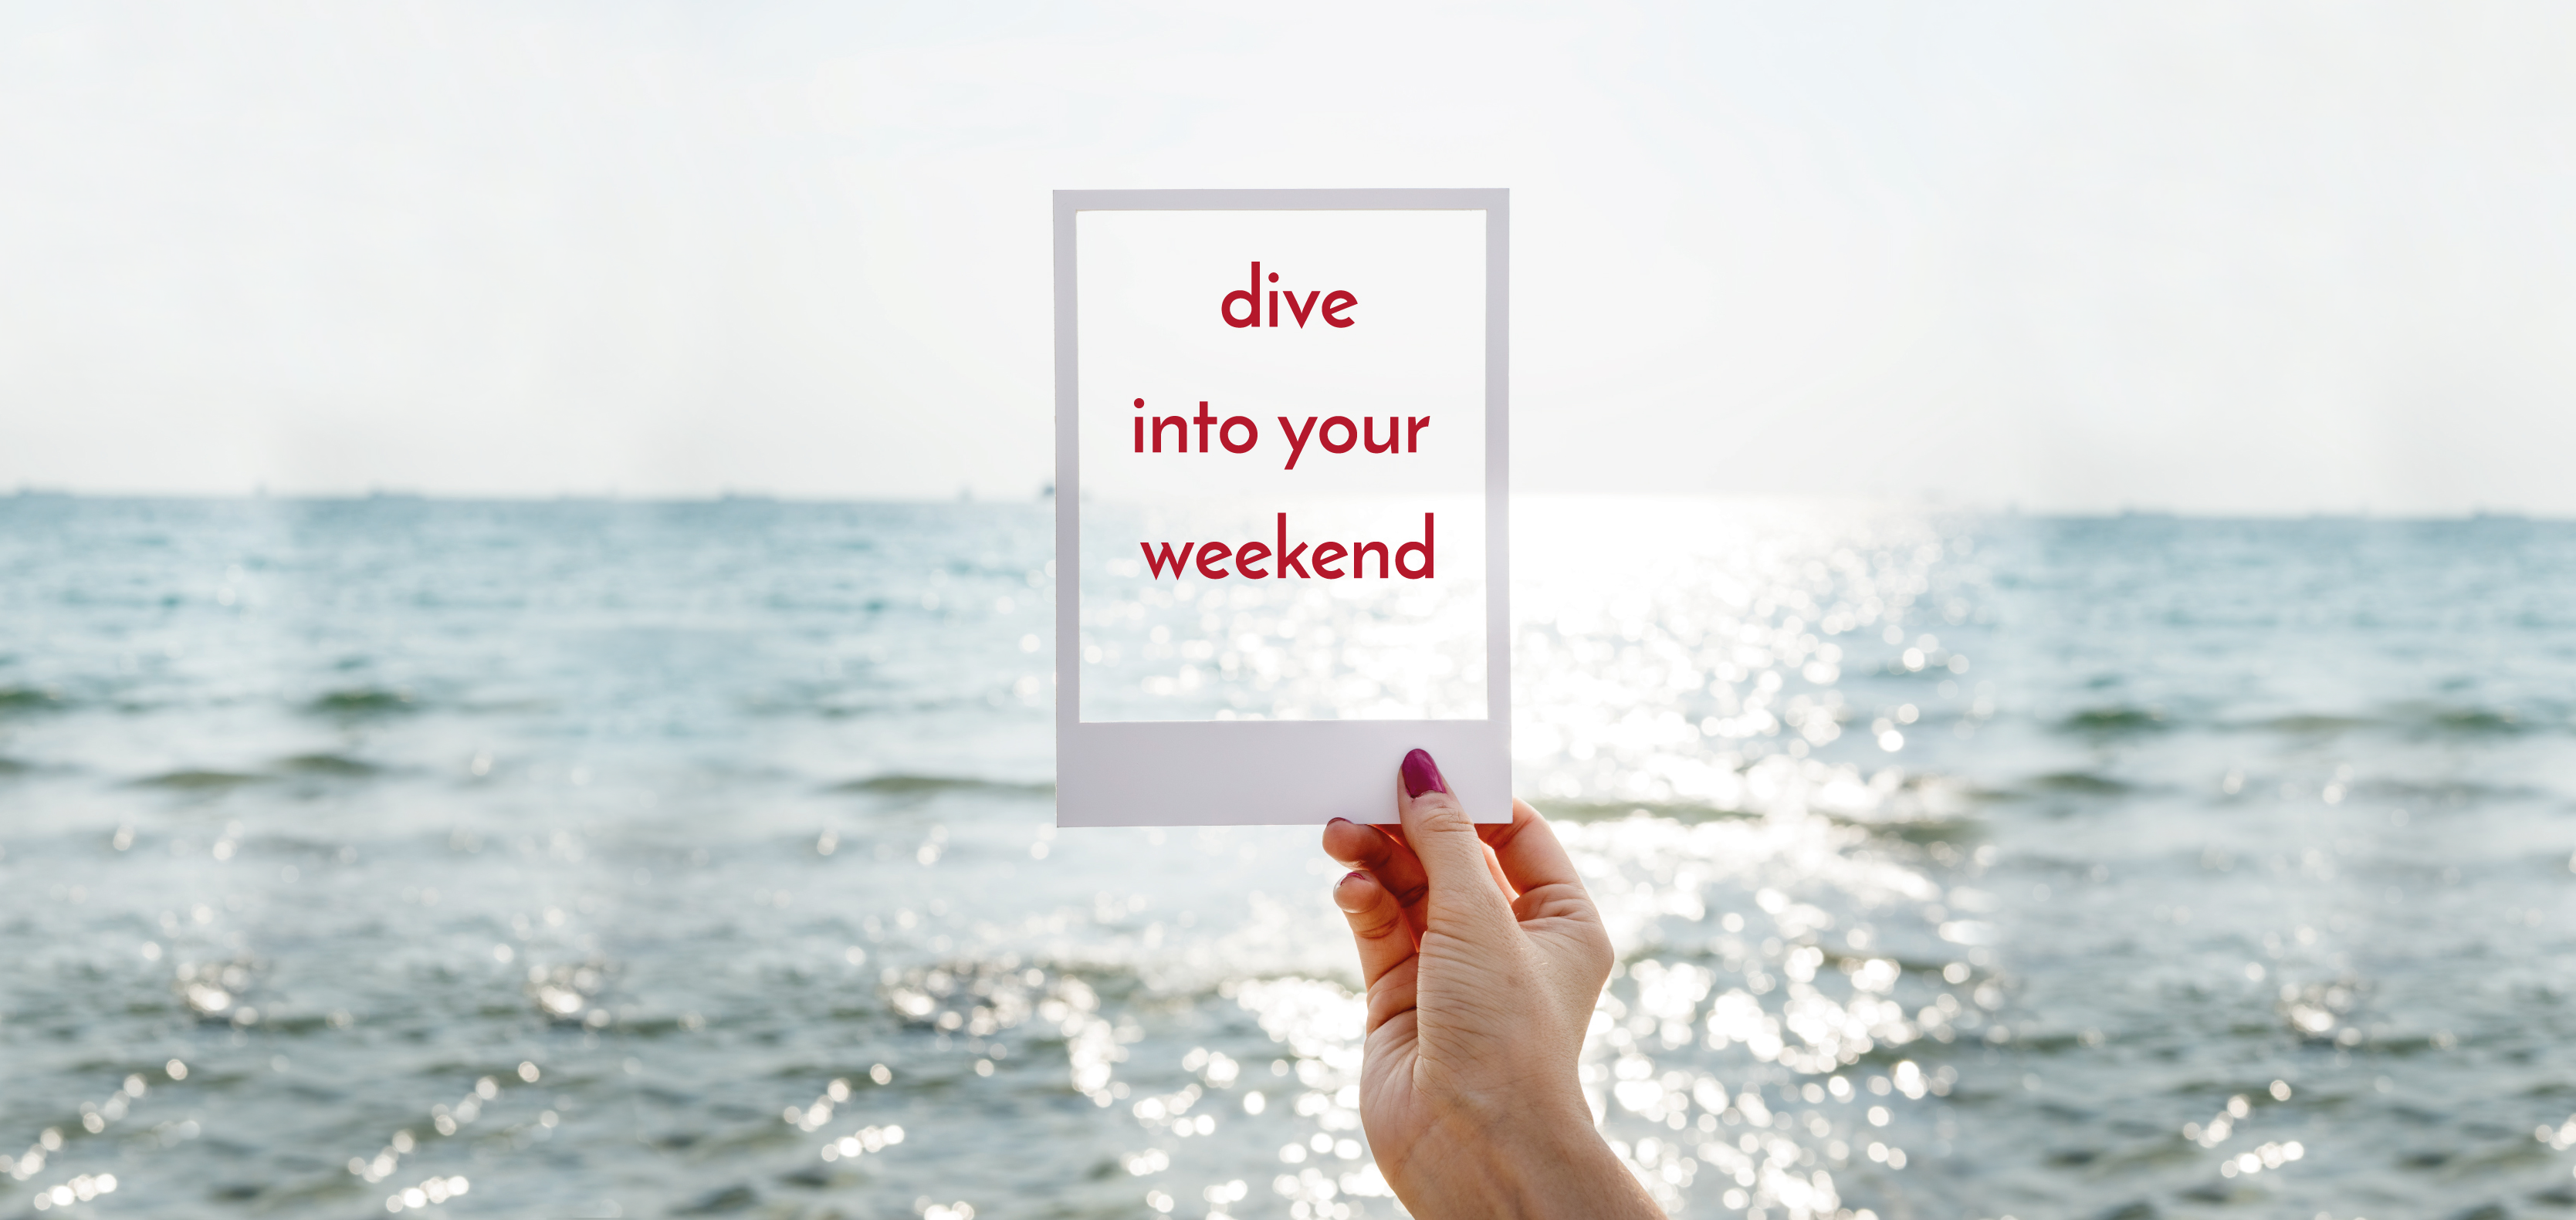 Dive into your weekend